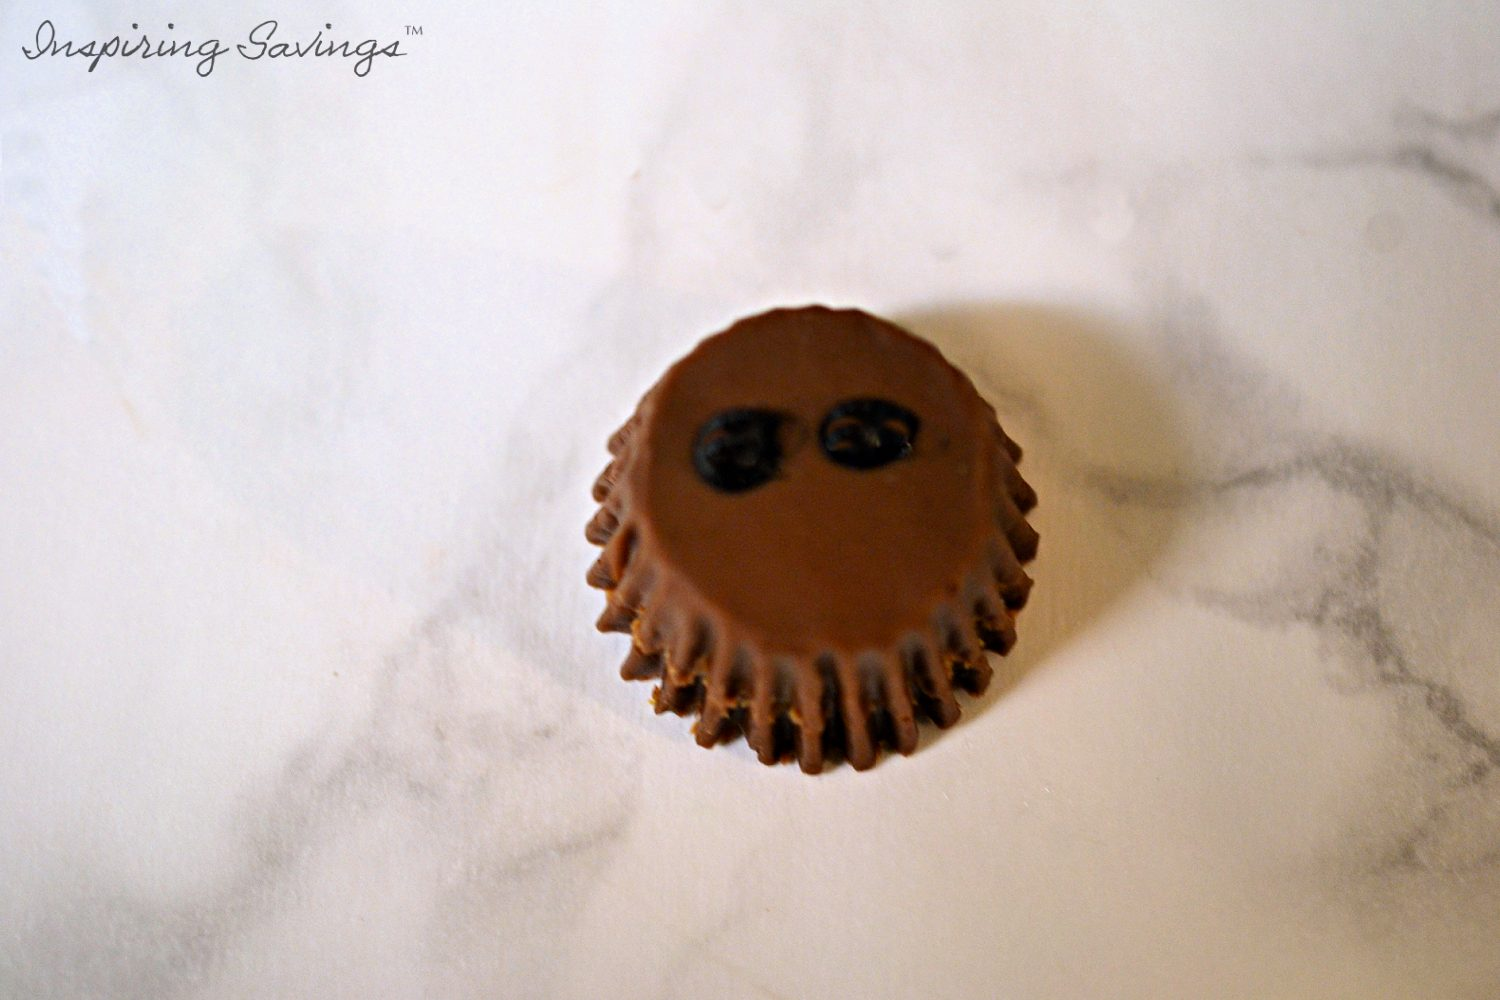 Peanut Butter Cup with black dotted eyes